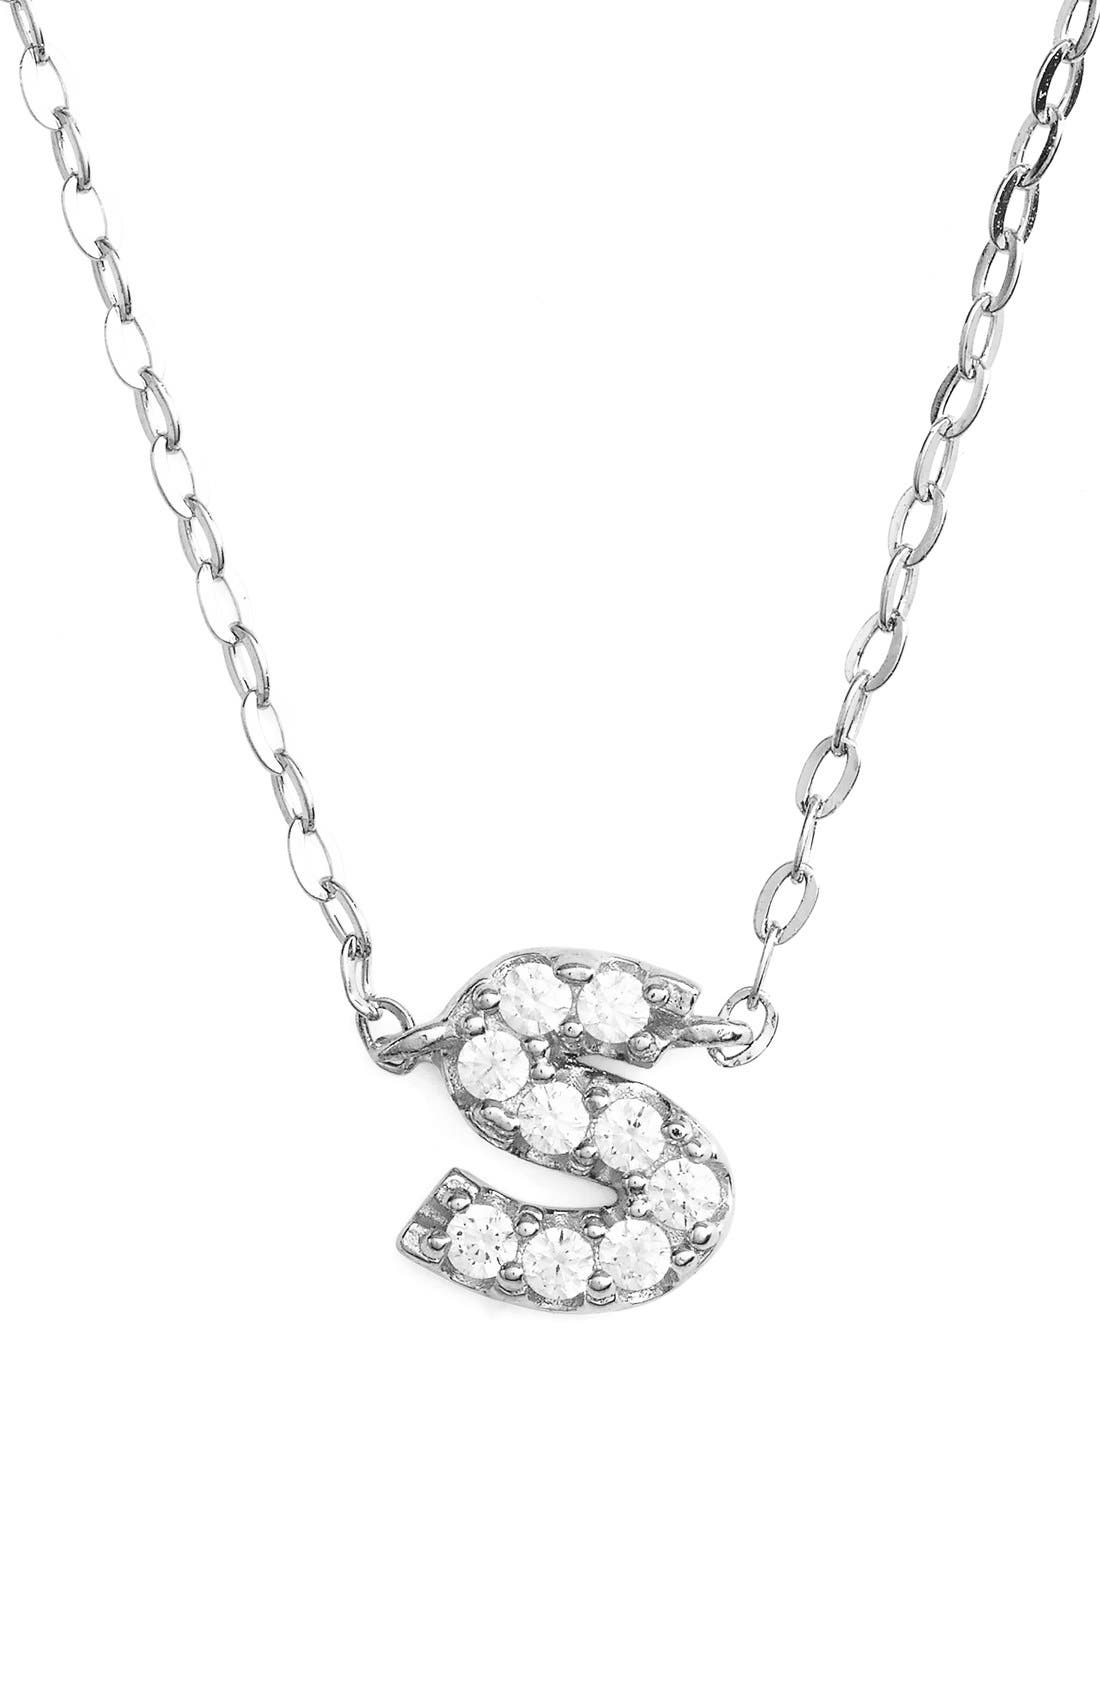 Cubic Zirconia Initial Pendant Necklace,                             Main thumbnail 1, color,                             S Silver